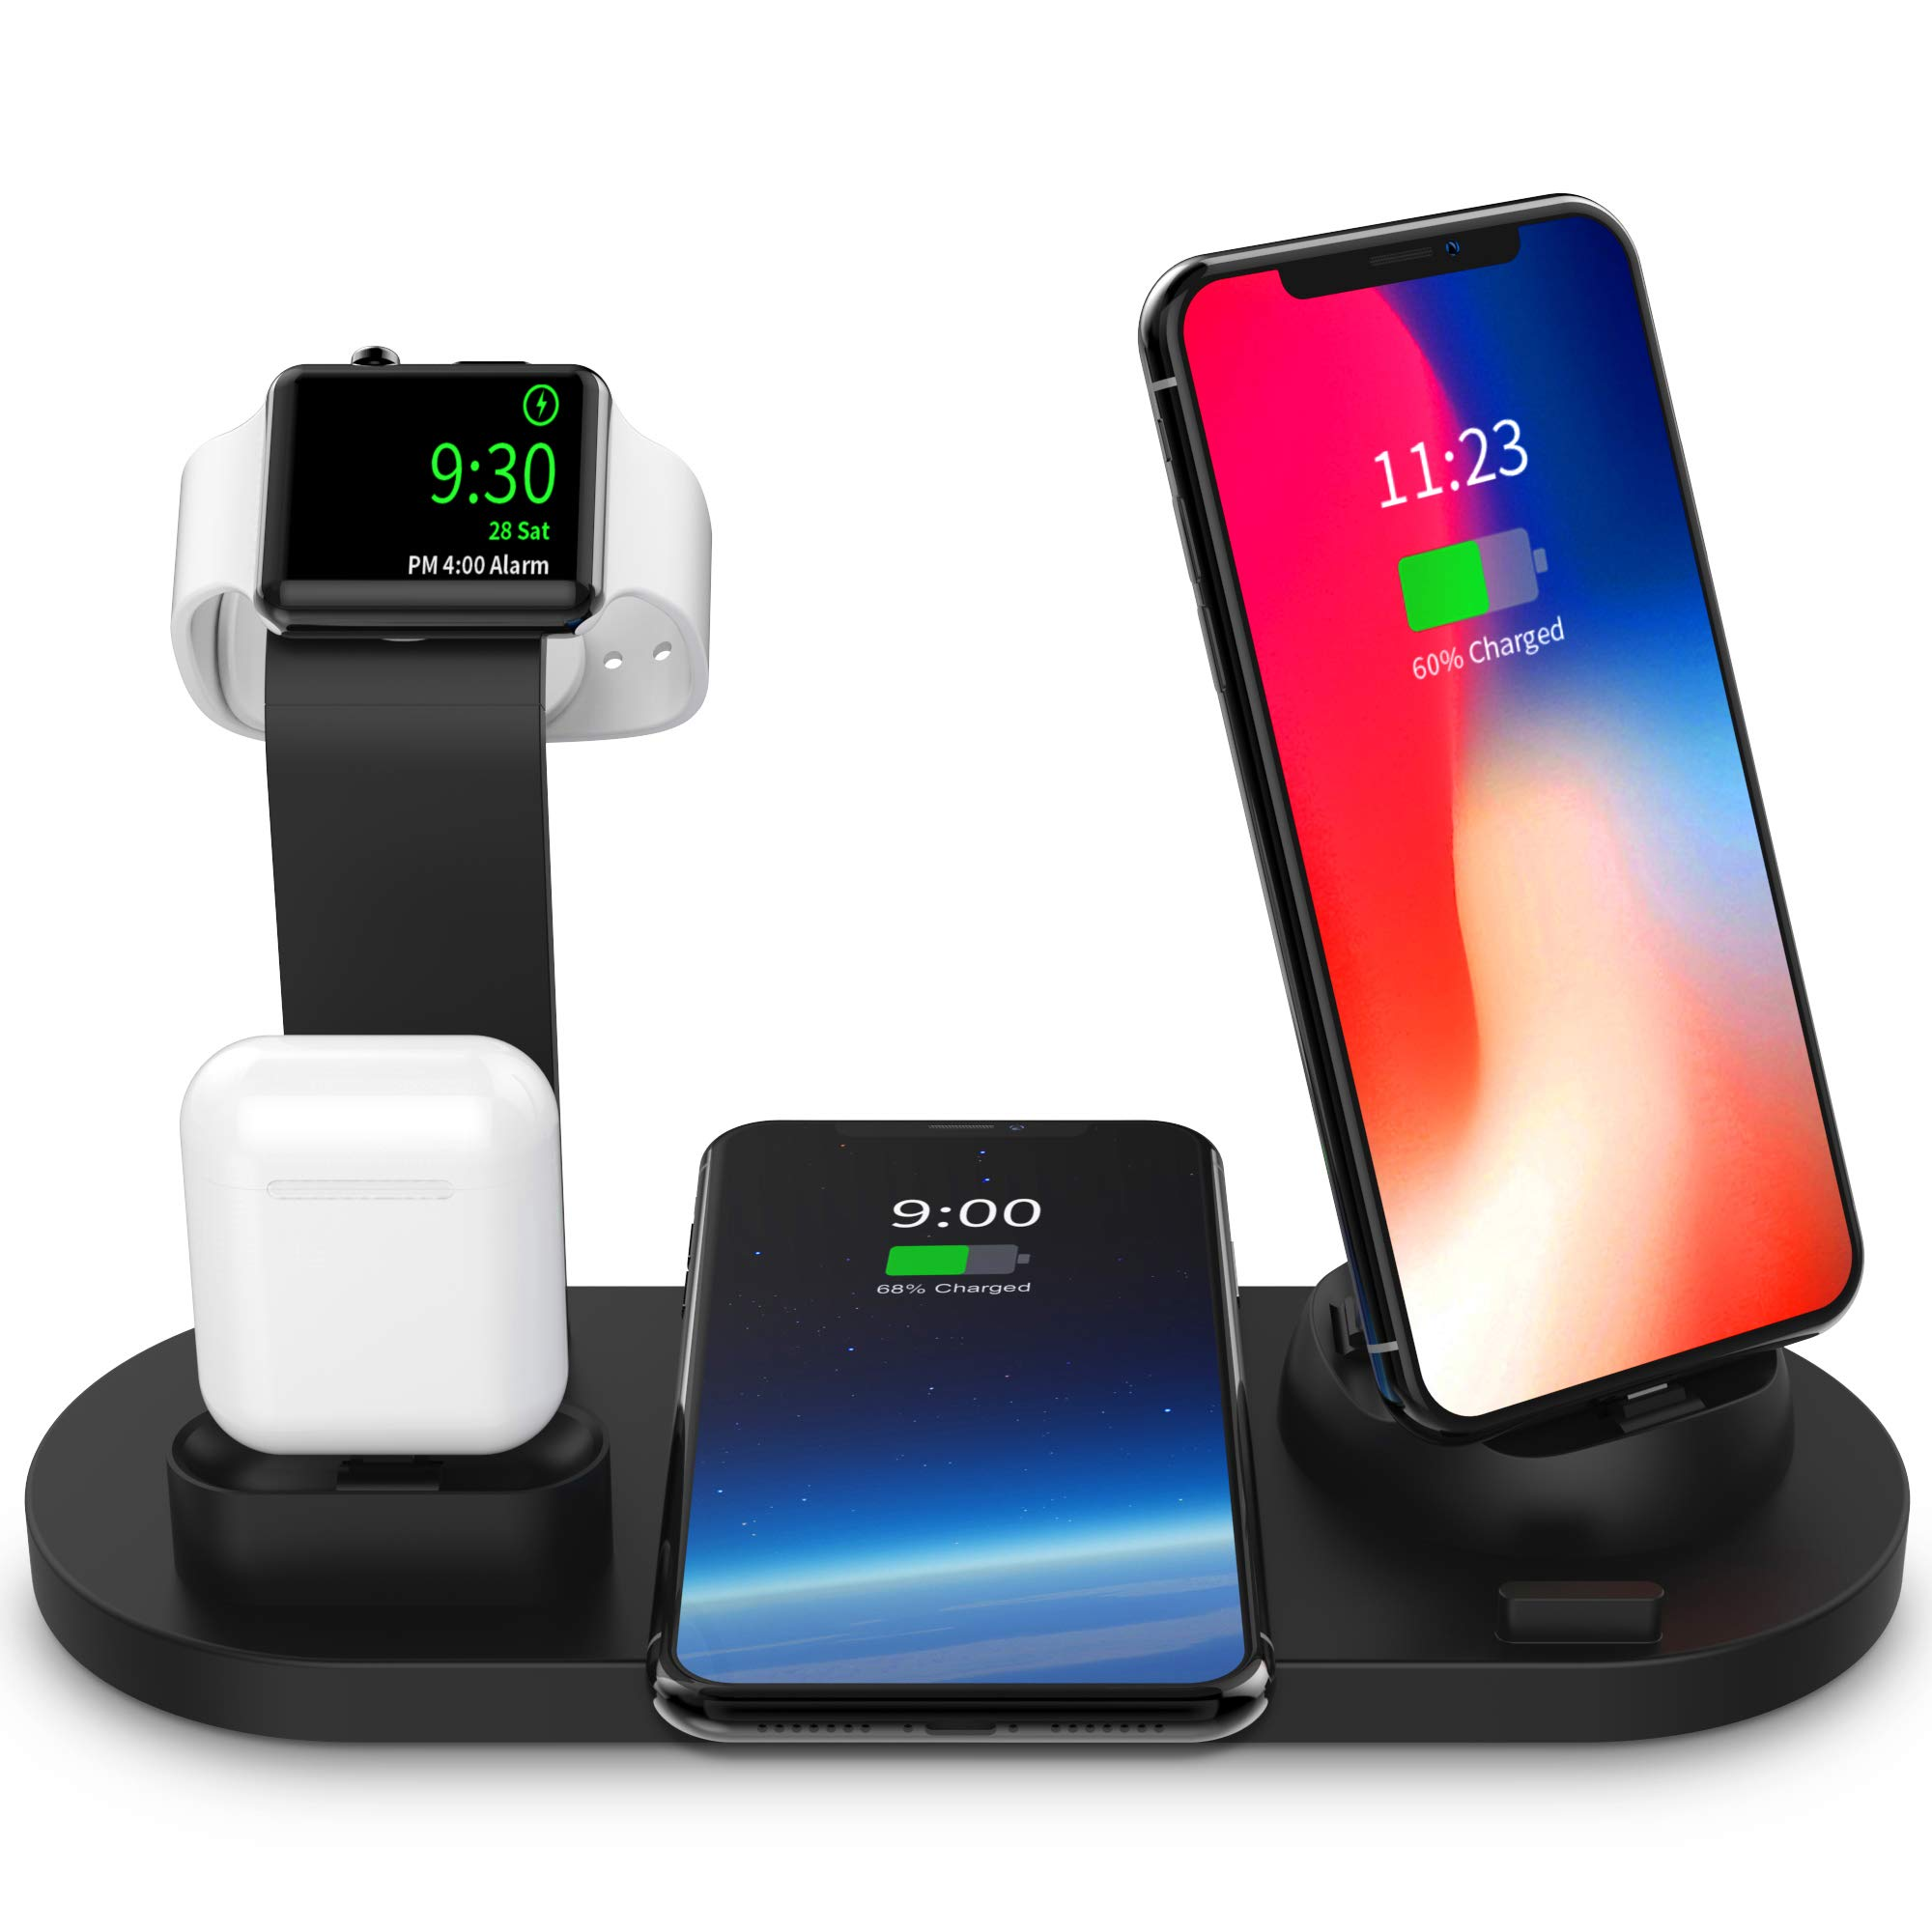 SODYSNAY Wireless Charger, 3 in 1 Wireless Charging Dock for Apple Watch and Airpods, Charging Station for Multiple Devices, Qi Fast Wireless Charging Stand Compatible iPhone X/XS/XR/Xs Max/8/8 Plus by SODYSNAY